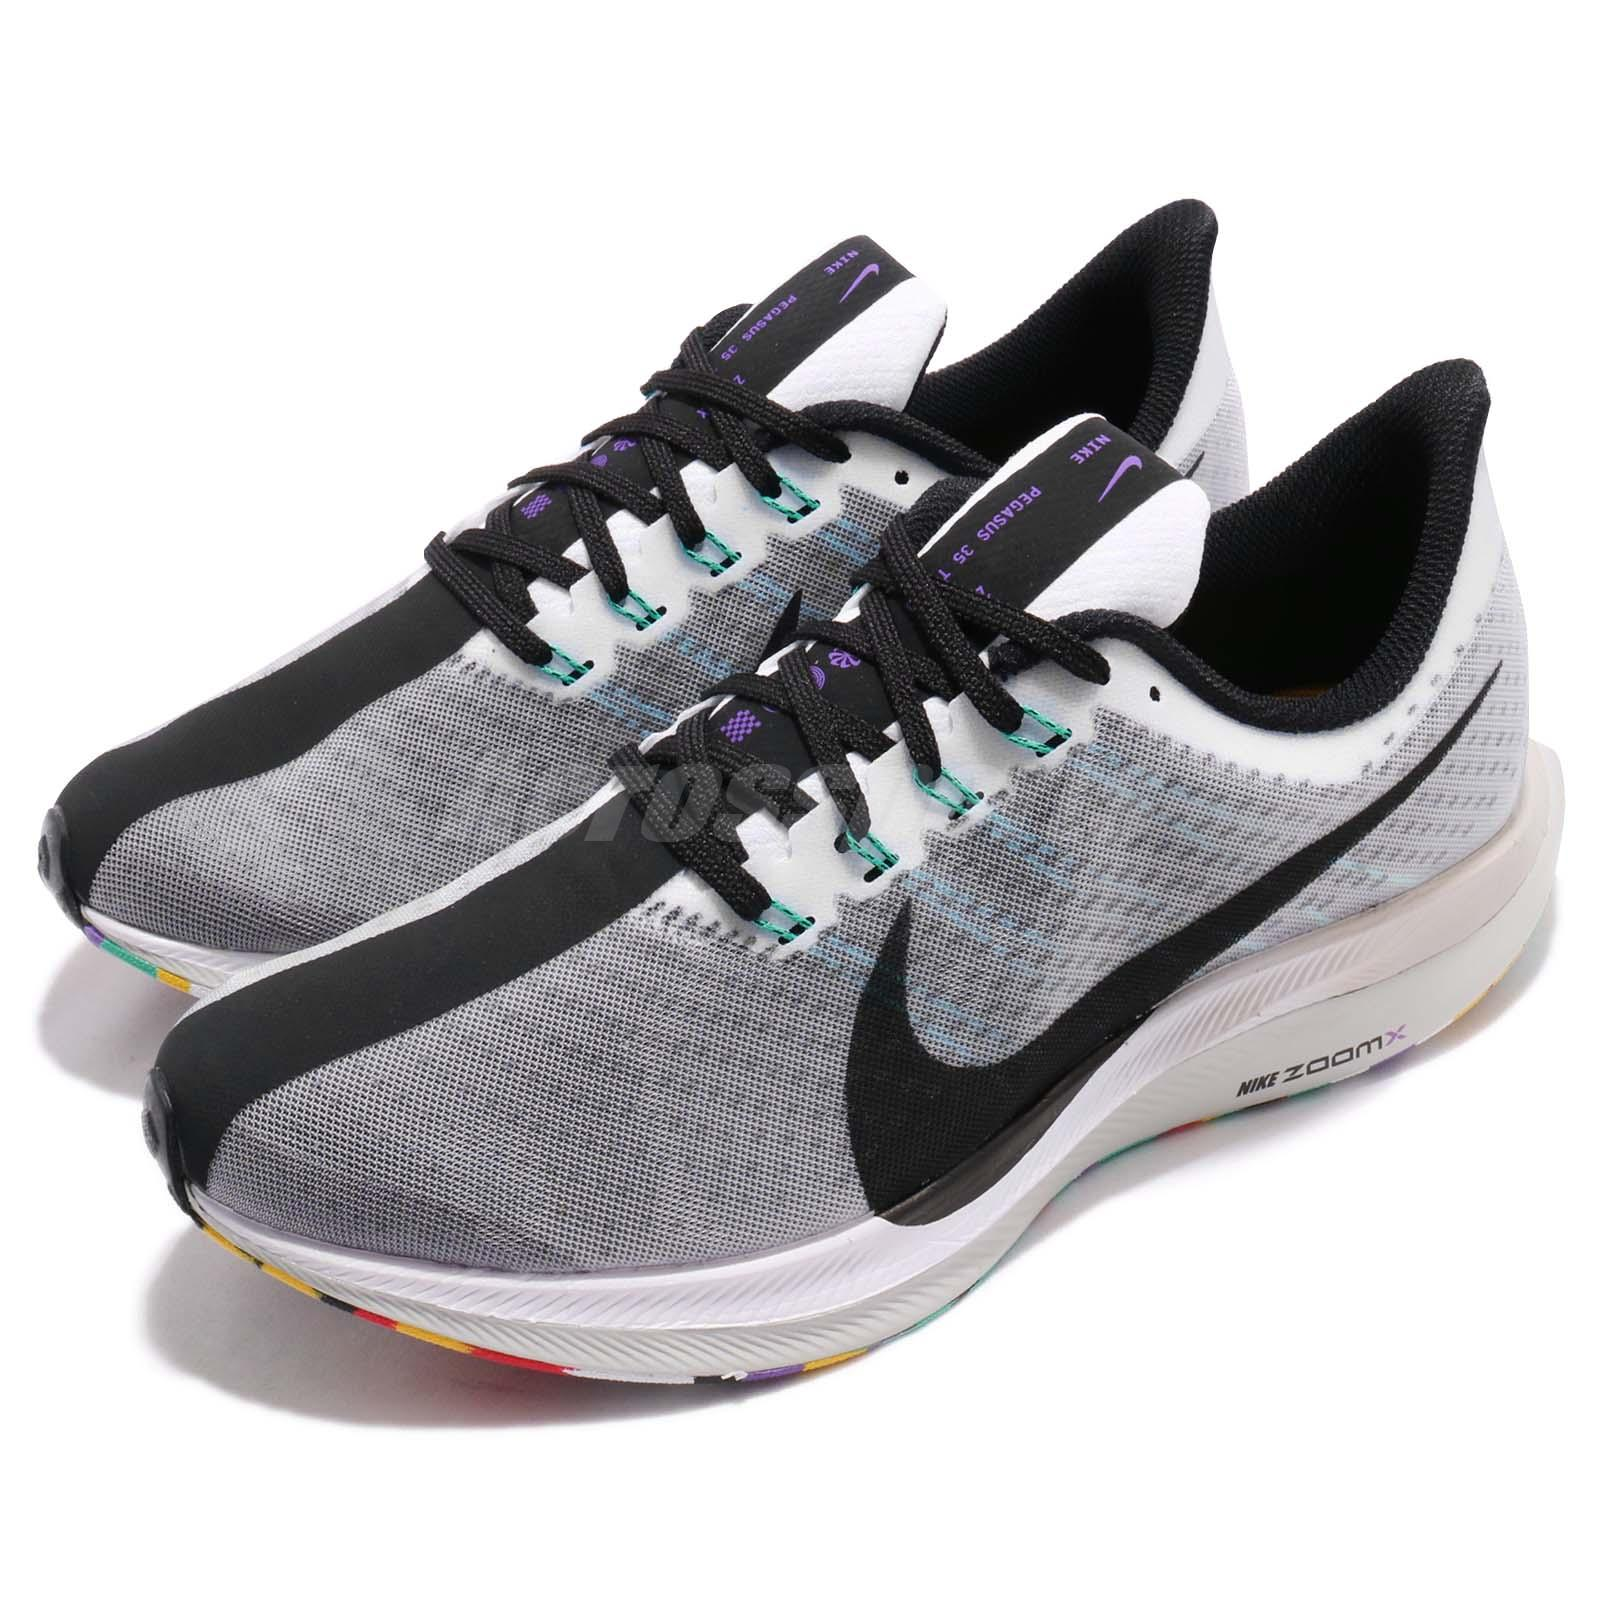 competitive price 0dc1f 9bab3 Details about Nike Zoom Pegasus 35 Turbo White Black Hyper Jade Men Running  Shoes AJ4114-101